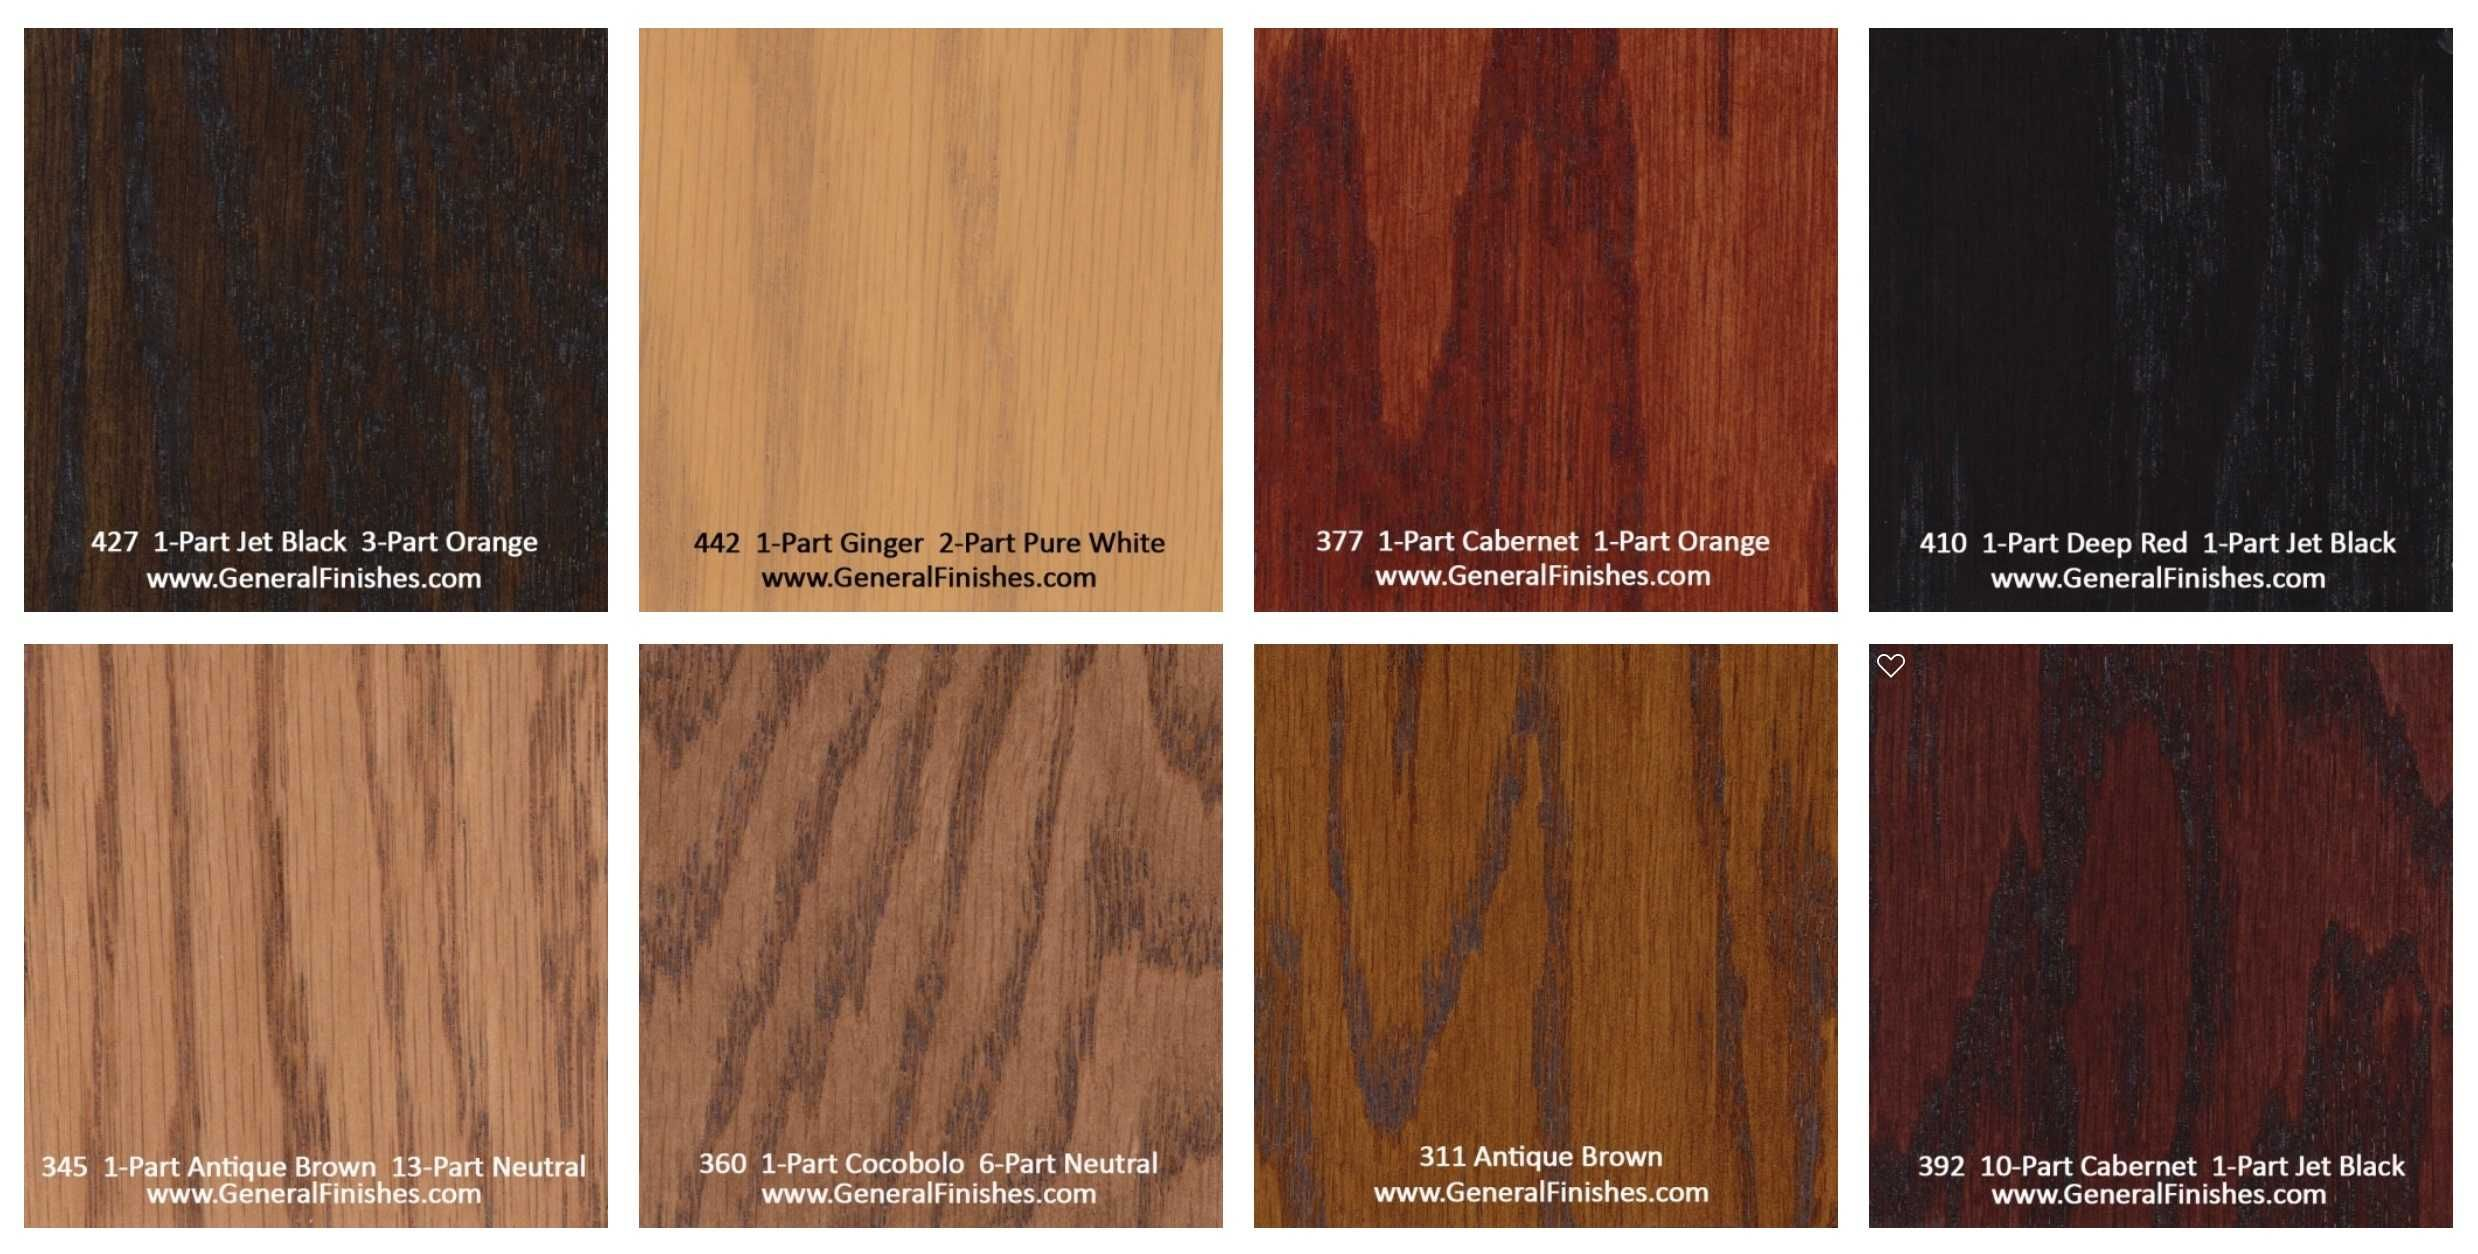 General finishes pro floor stain color swatch chart for for Shades of laminate flooring